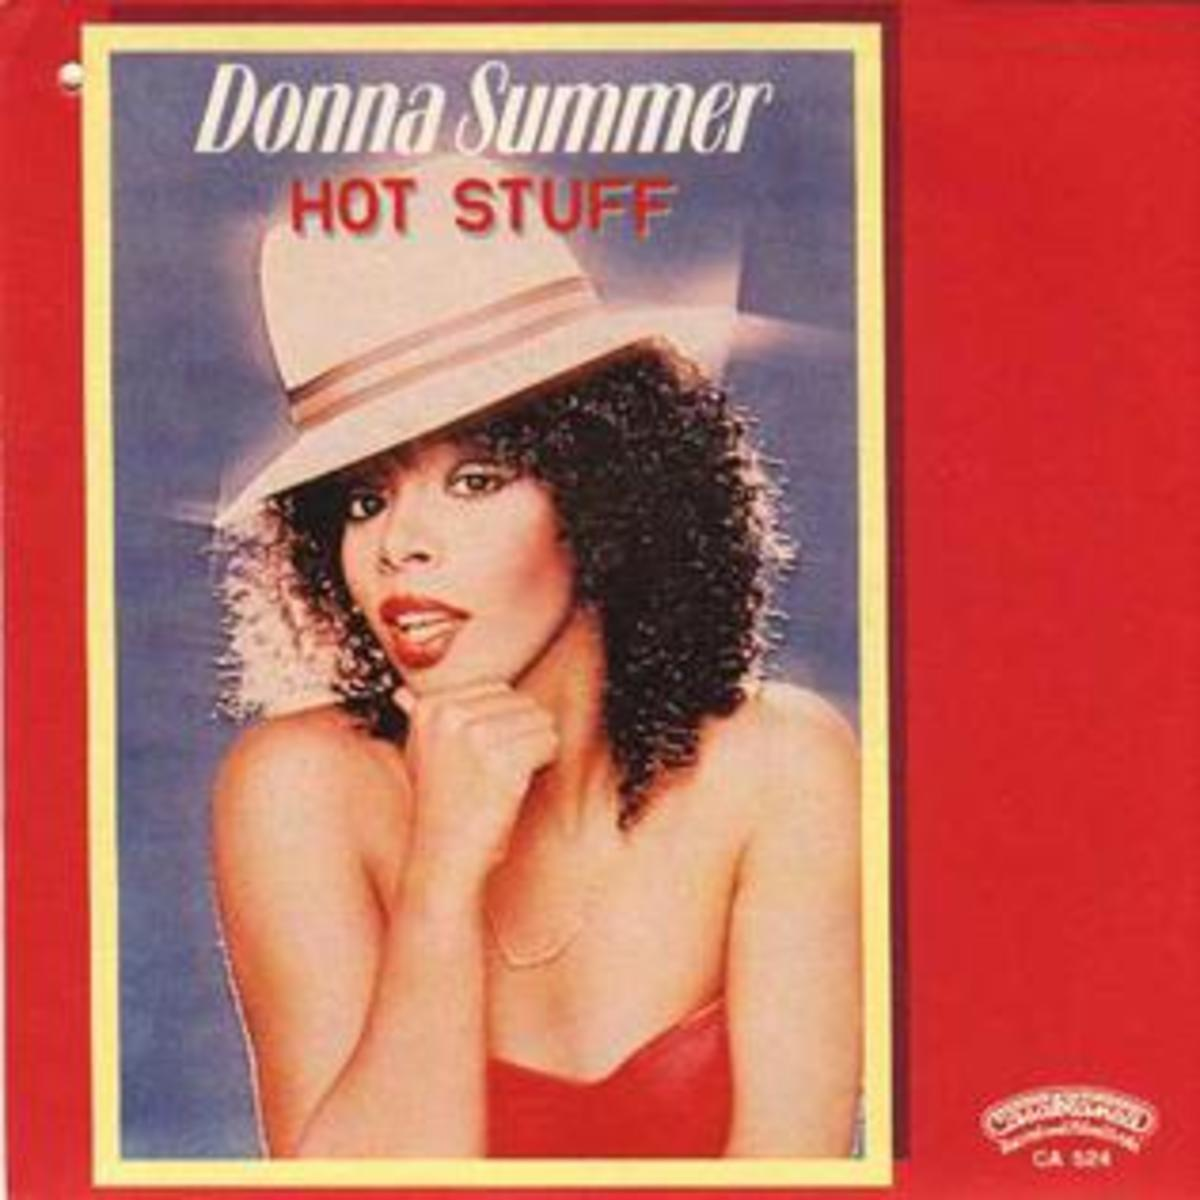 The film's impact proved so strong that it's impossible to listen to Donna Summer without thinking about the post office scene.